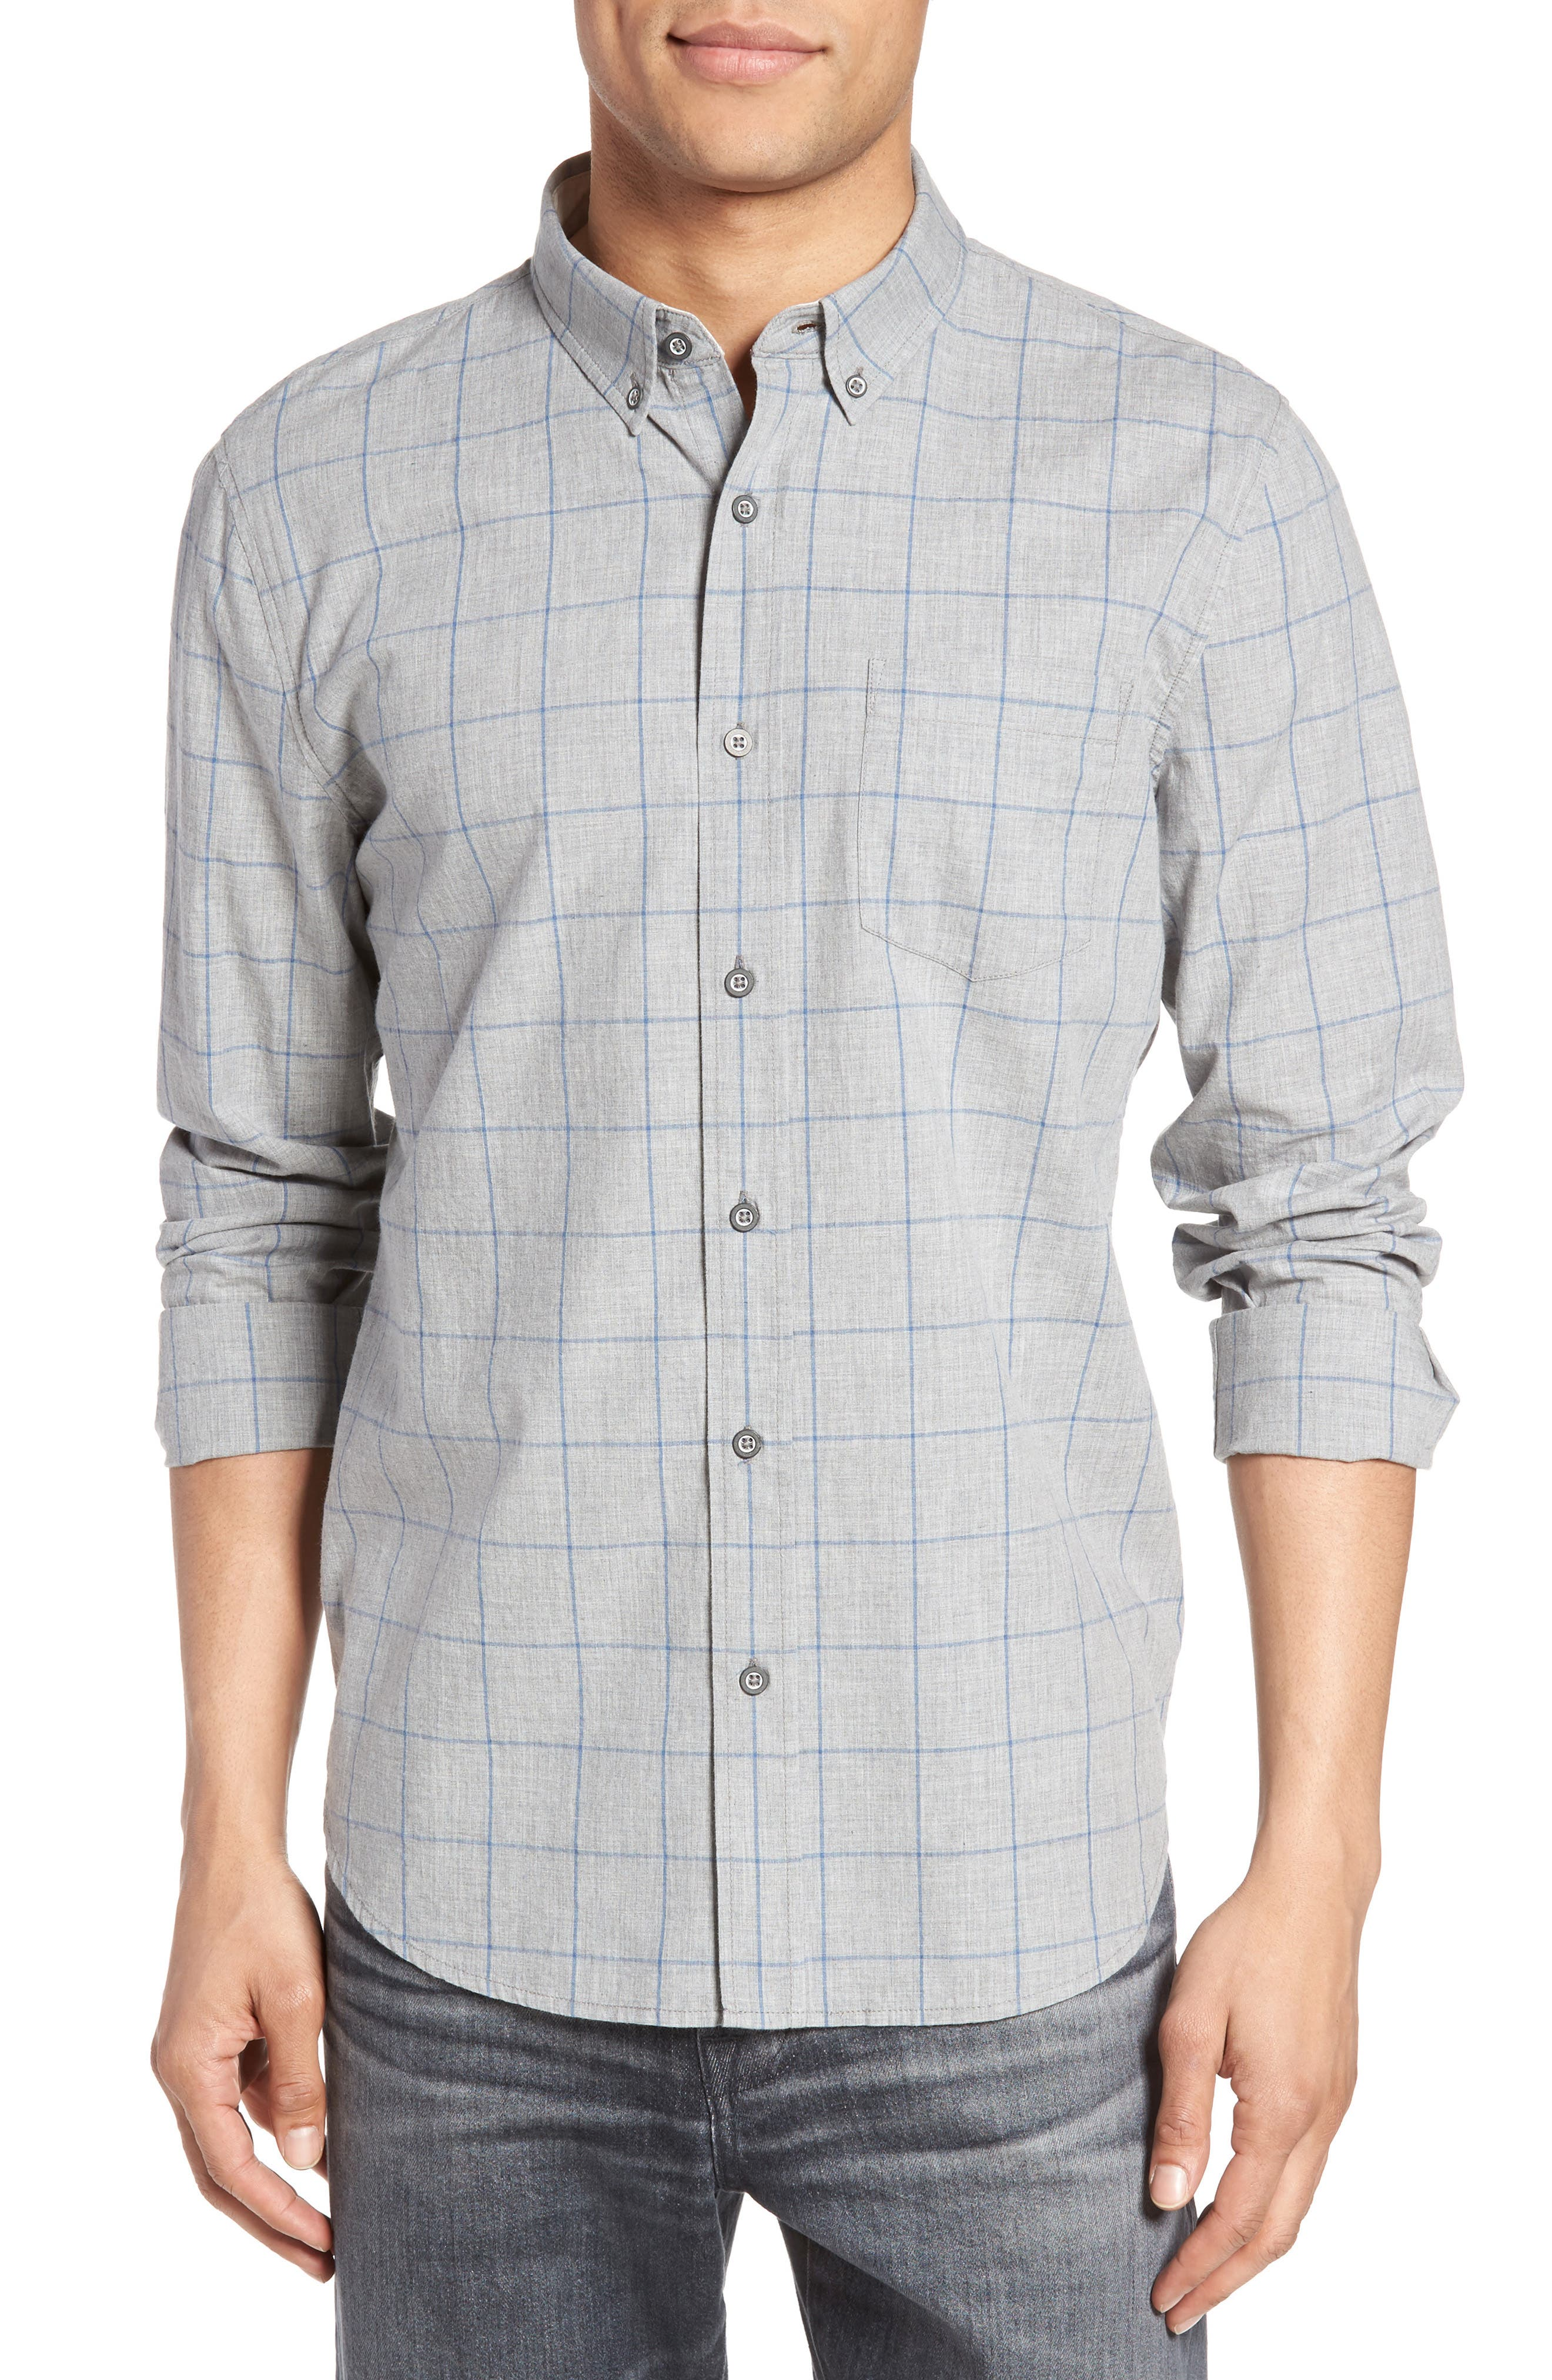 Grady Cotton Sport Shirt,                         Main,                         color, Heather Grey/ Sailor Blue